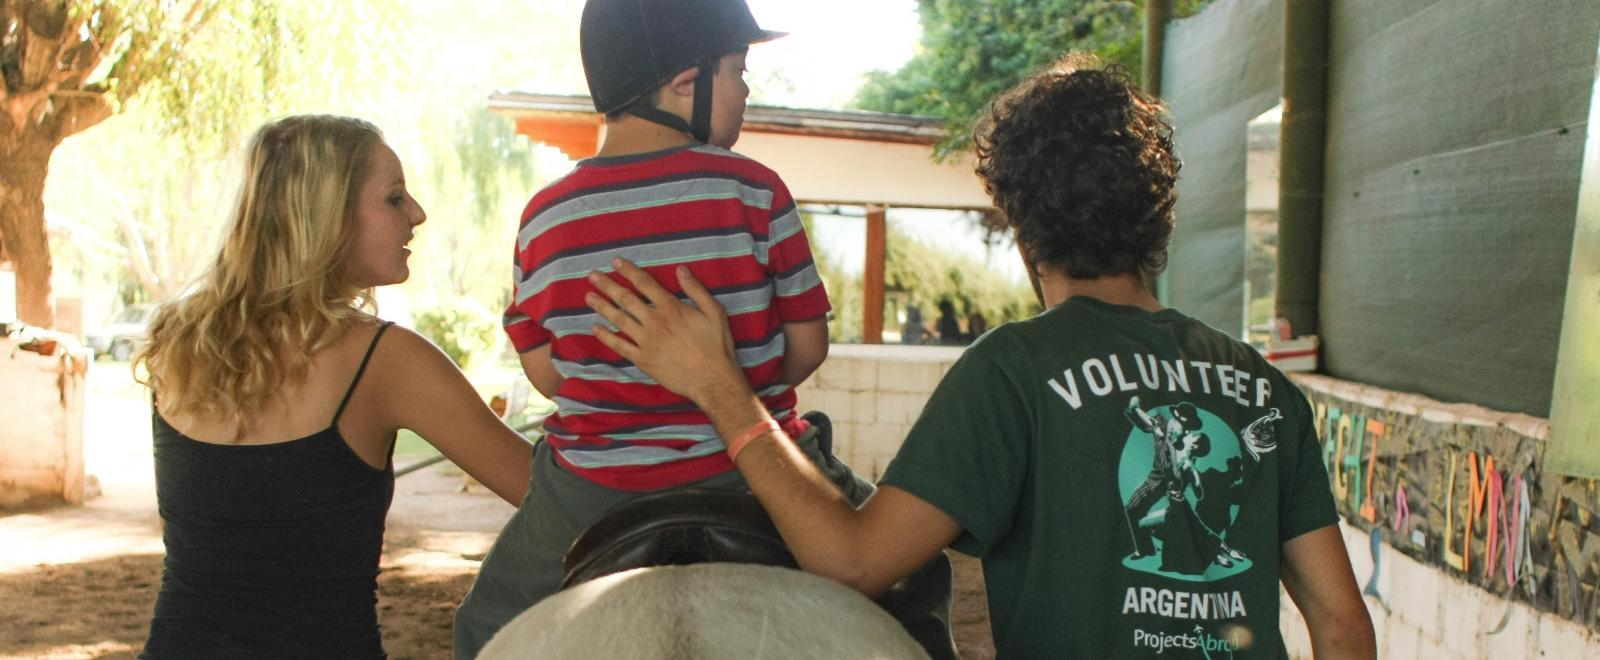 Projects Abroad interns doing an Equine Therapy placement in Argentina help a child ride a horse during a therapy session.